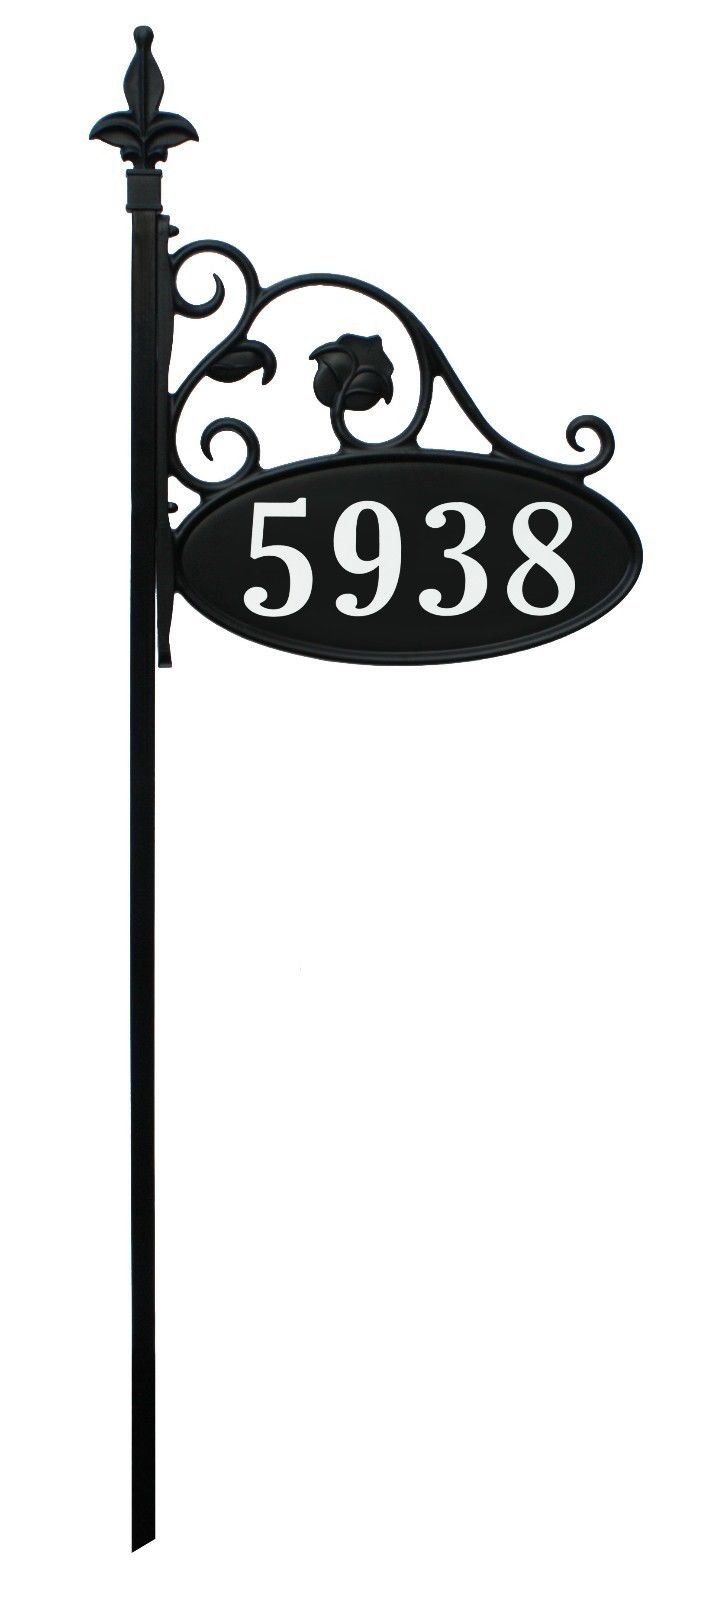 Park Place Oval Double Sided Reflective 911 Home Address Sign for Yard Hand Crafted in USA Wrought Iron Look (48'' Pole)